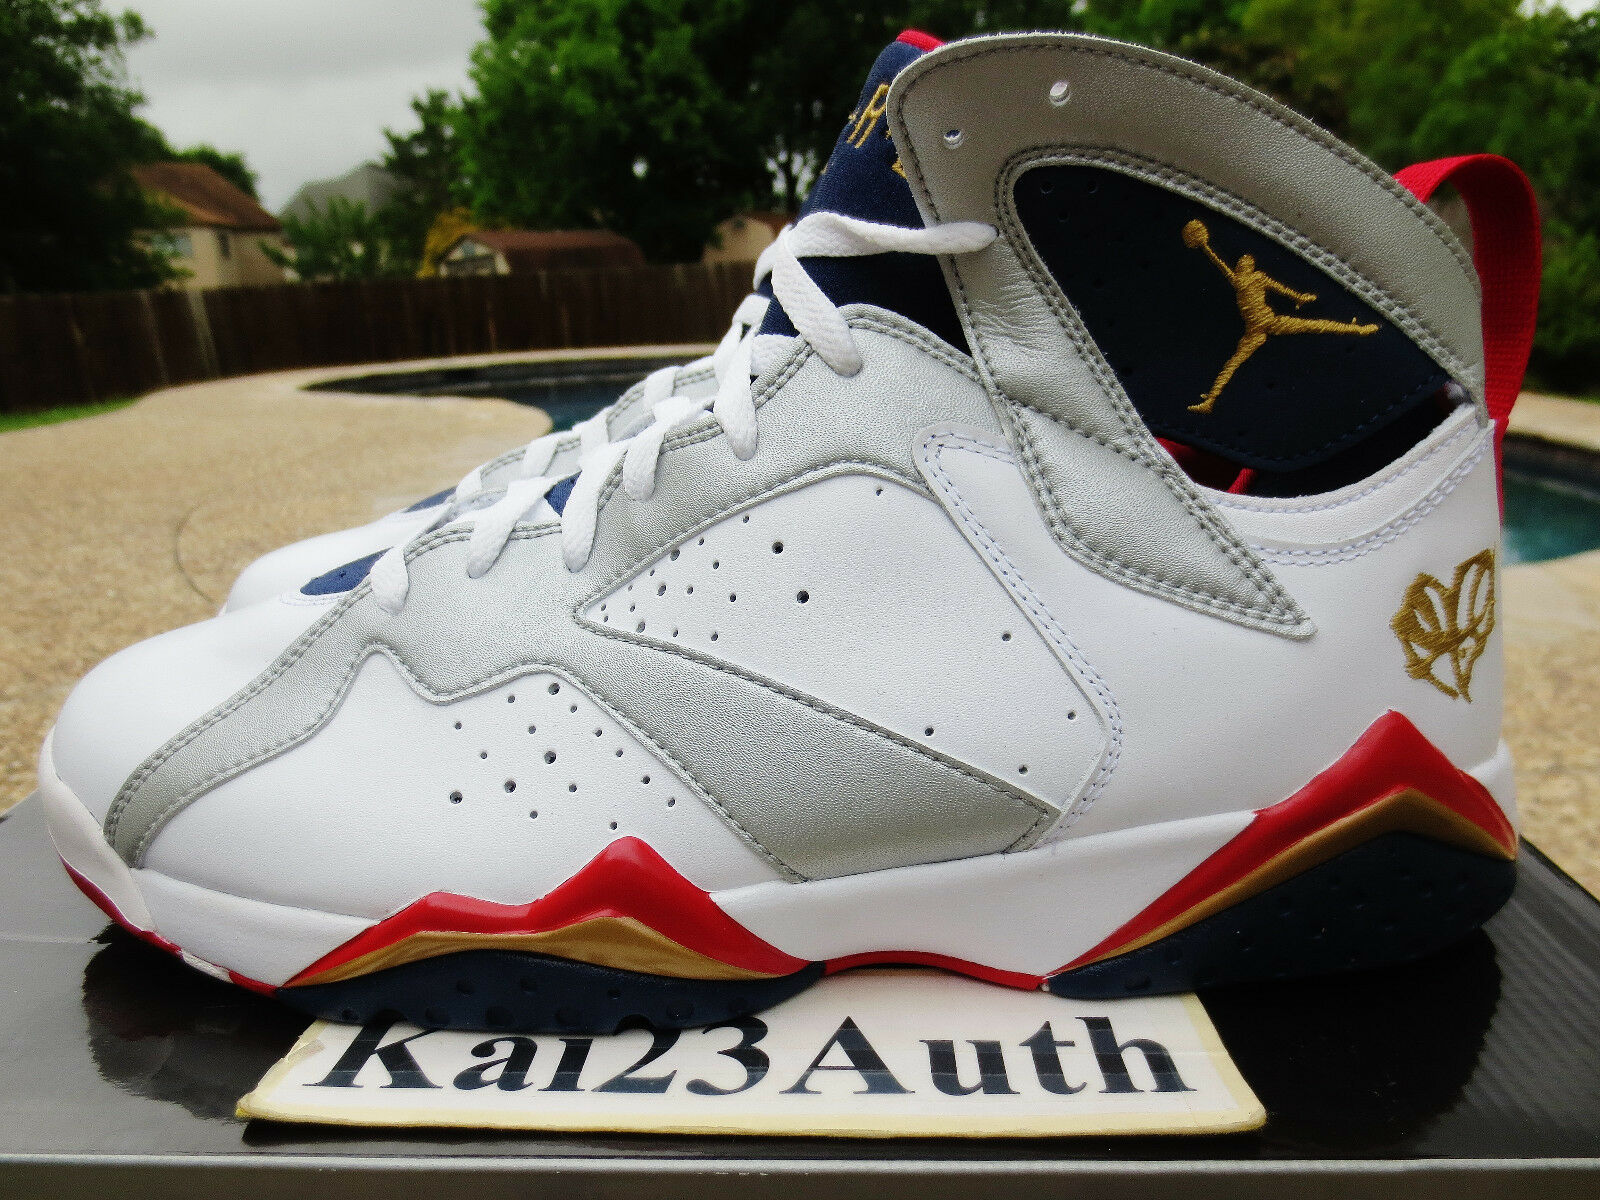 DS Air Jordan 7 Retro Olympic White/MTLLC Gold-TR-Red MID NVY US Men Size 12